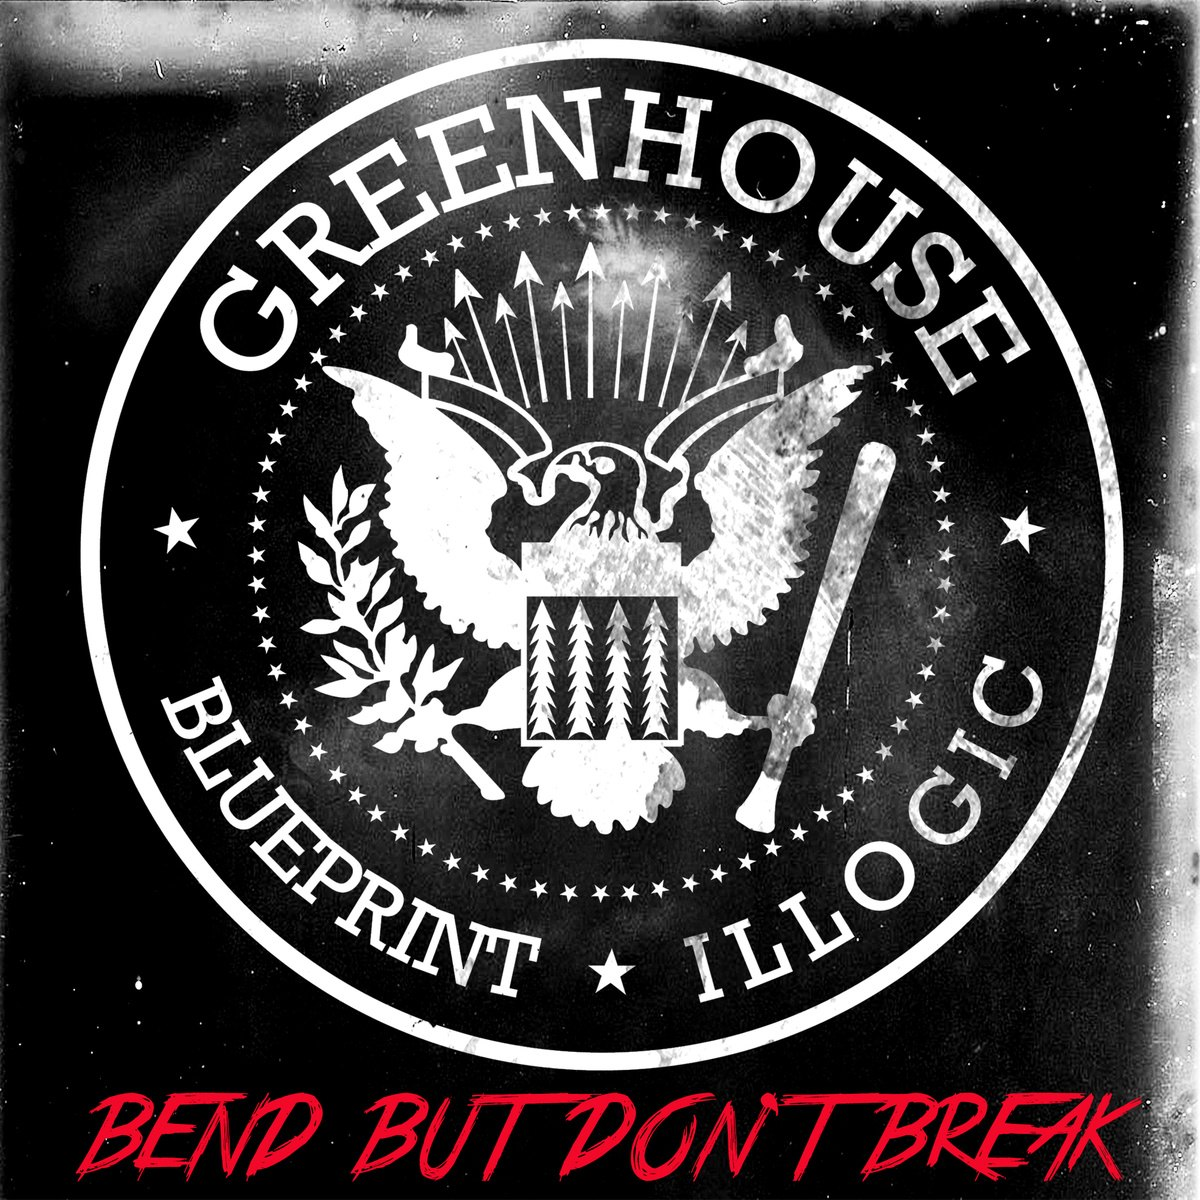 Greenhouse (Blueprint & Illogic) - Bend But Don't Break [Deluxe Edition]